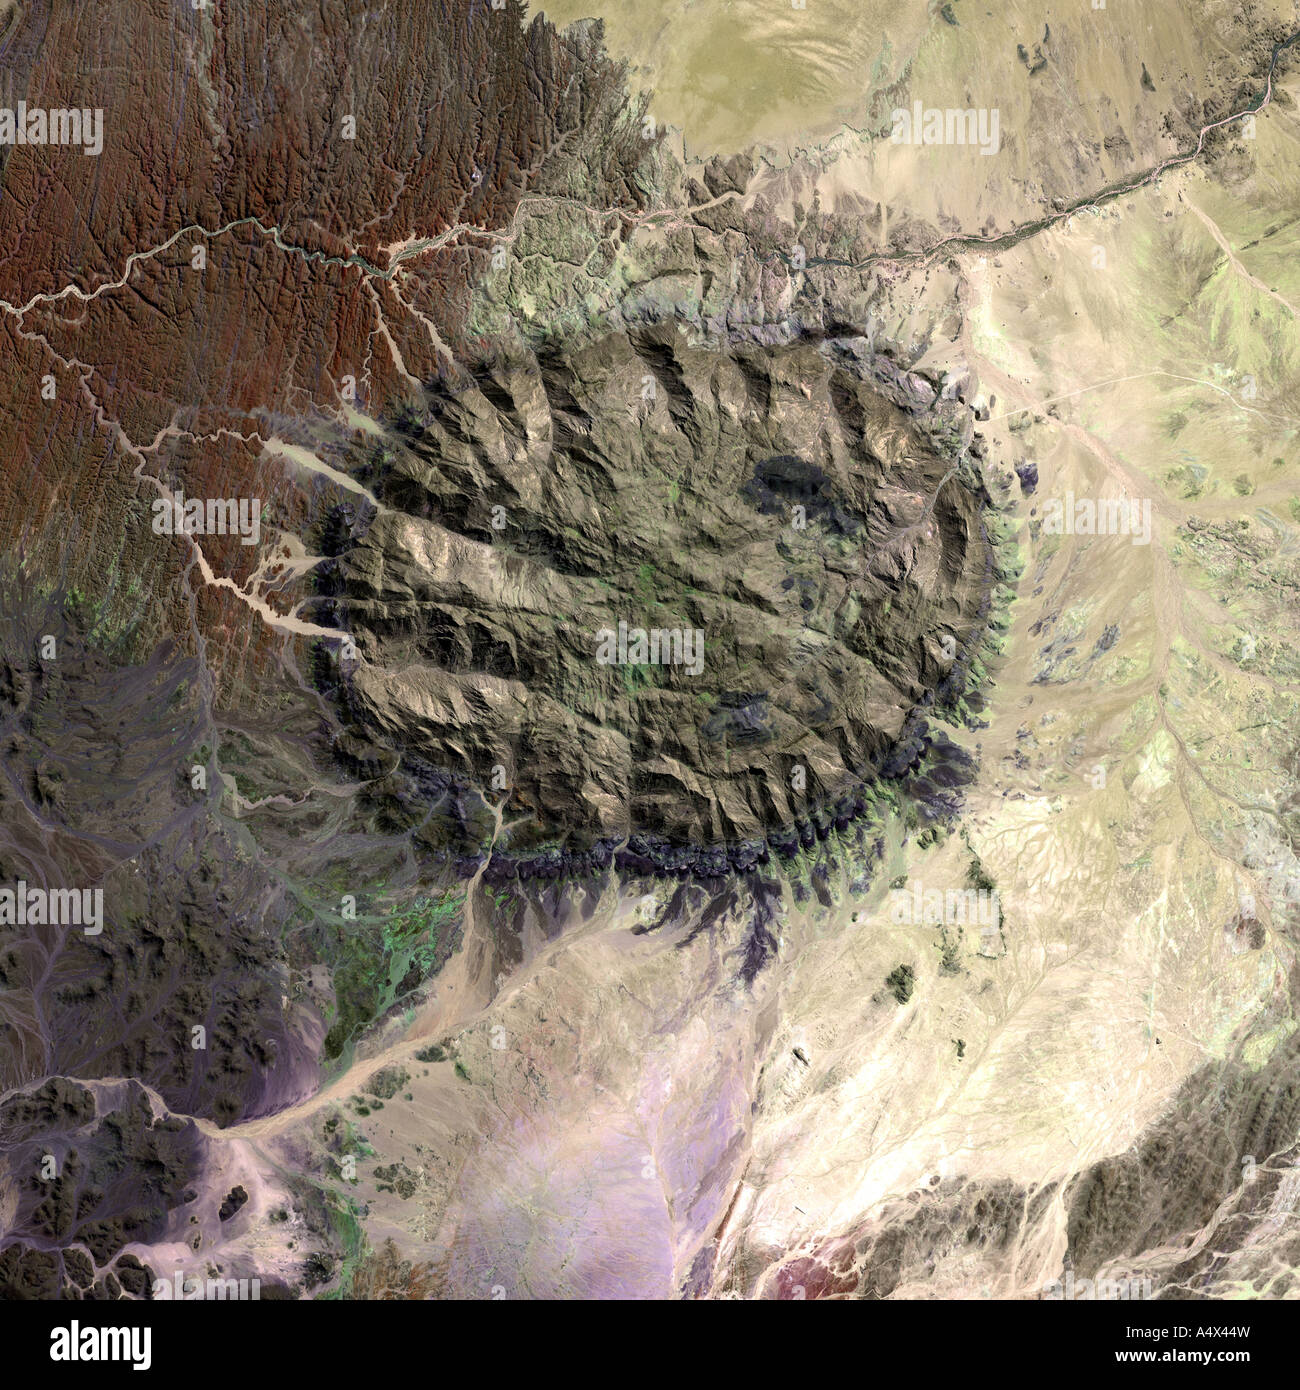 The Brandenberg massif Namibia viewed from space Optimised version of an original NASA image Stock Photo